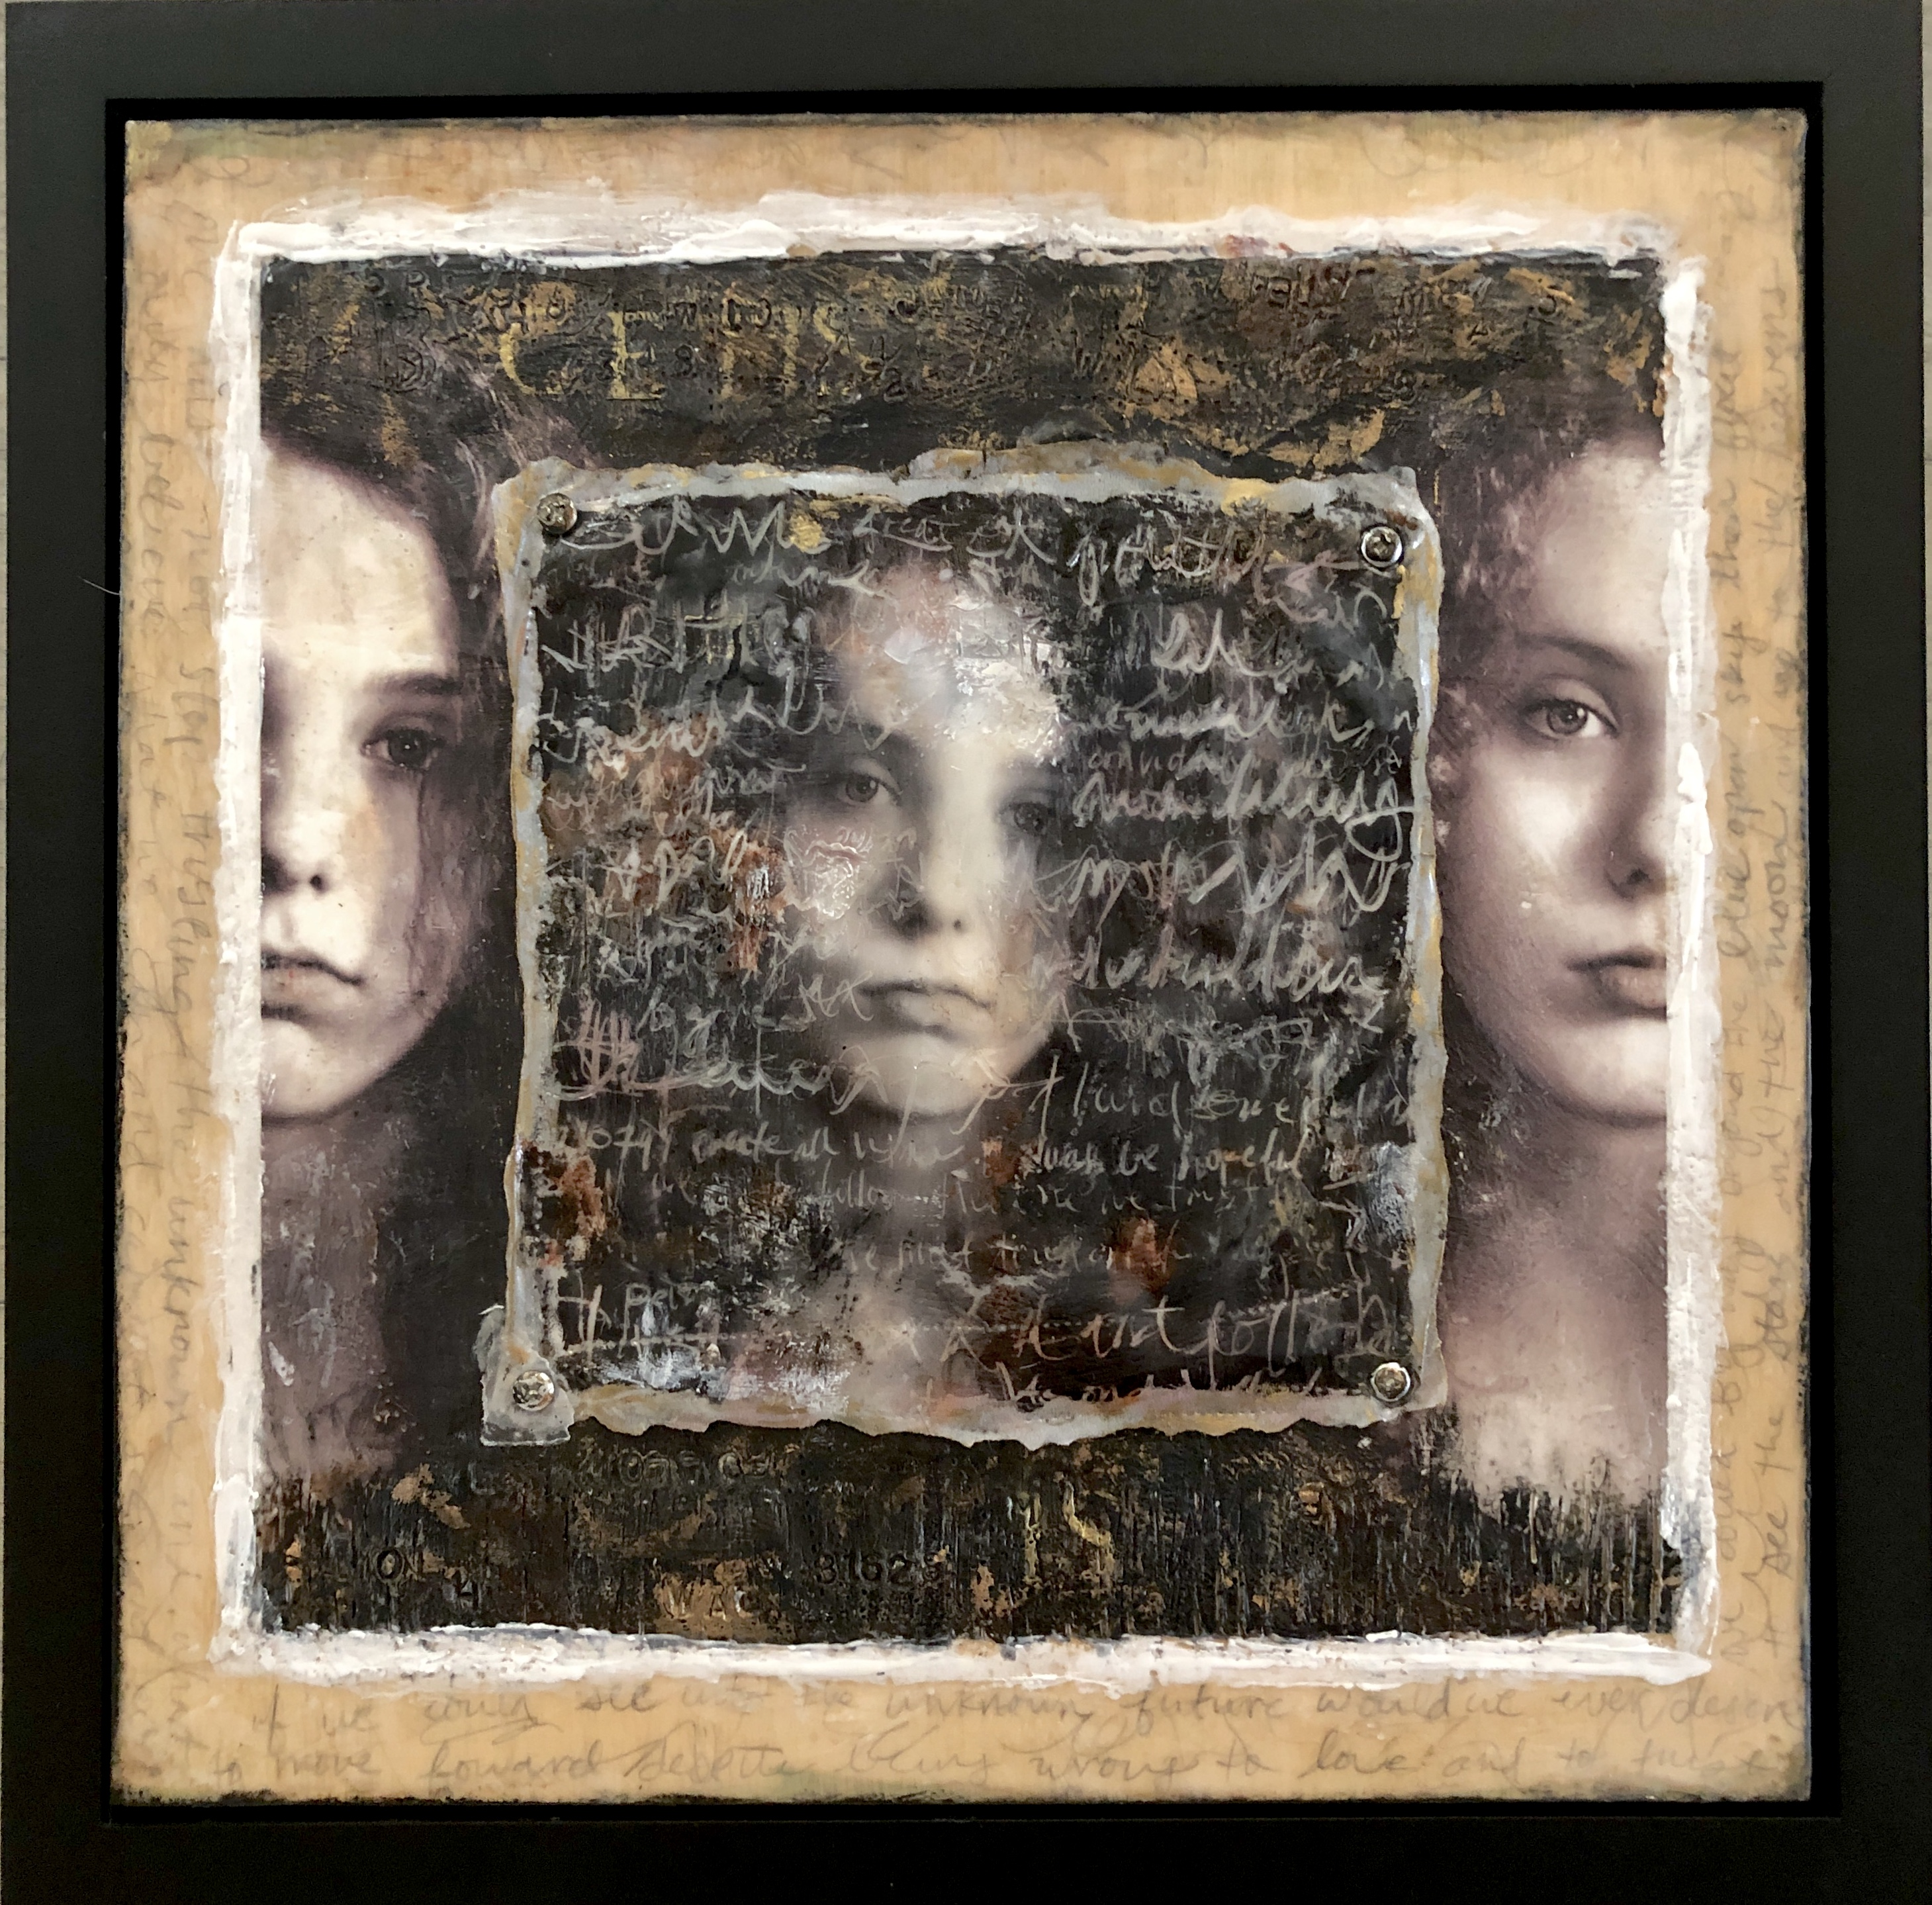 'The Voices in My Head', encaustic mixed media by Deanne Bushell ($3250)